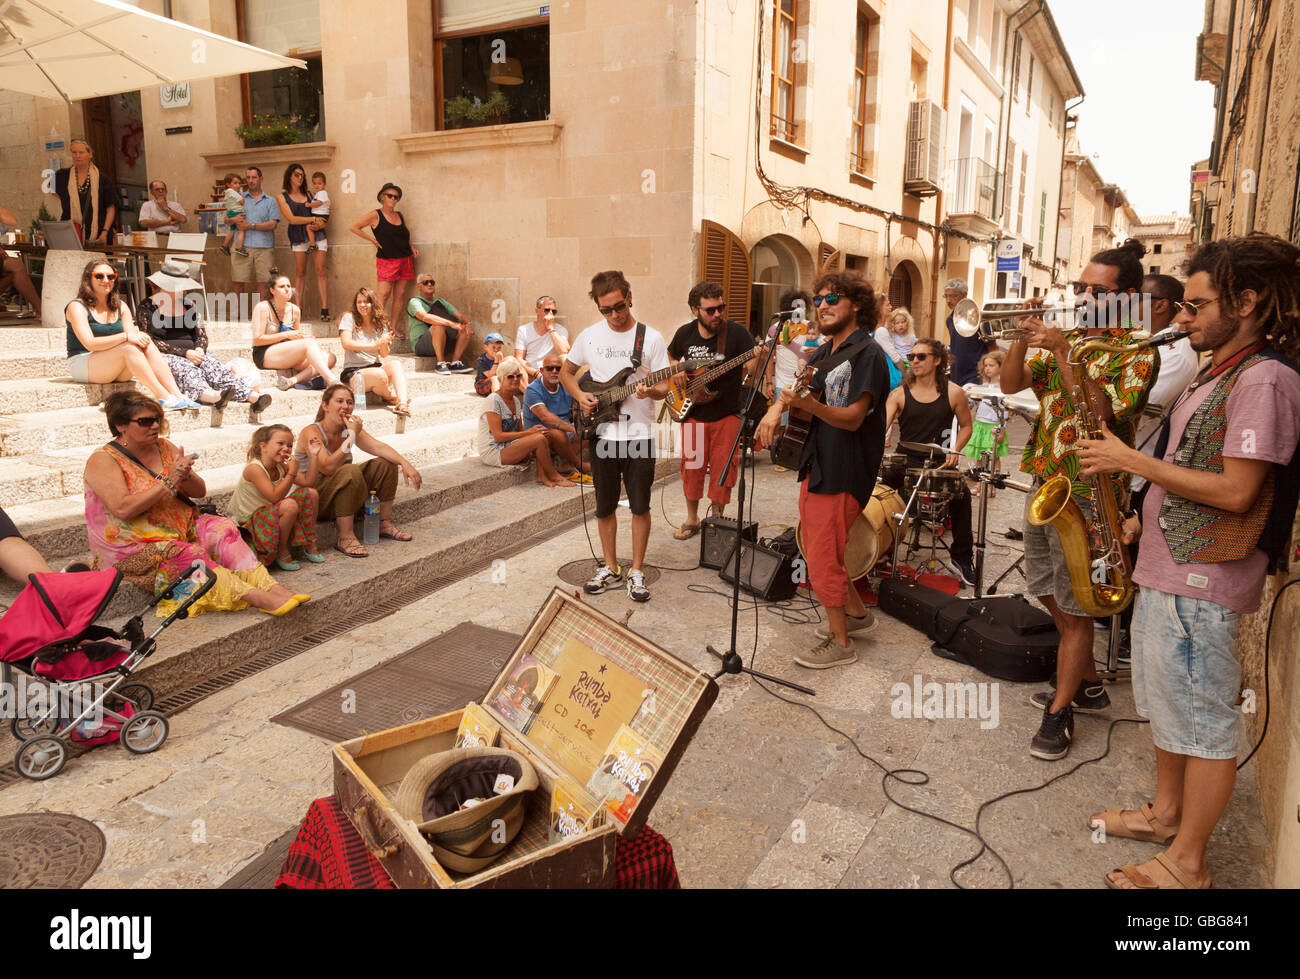 A band playing on the street, Pollenca ( Pollensa ) old town, Mallorca ( Majorca ), Balearic Islands, Spain Europe - Stock Image